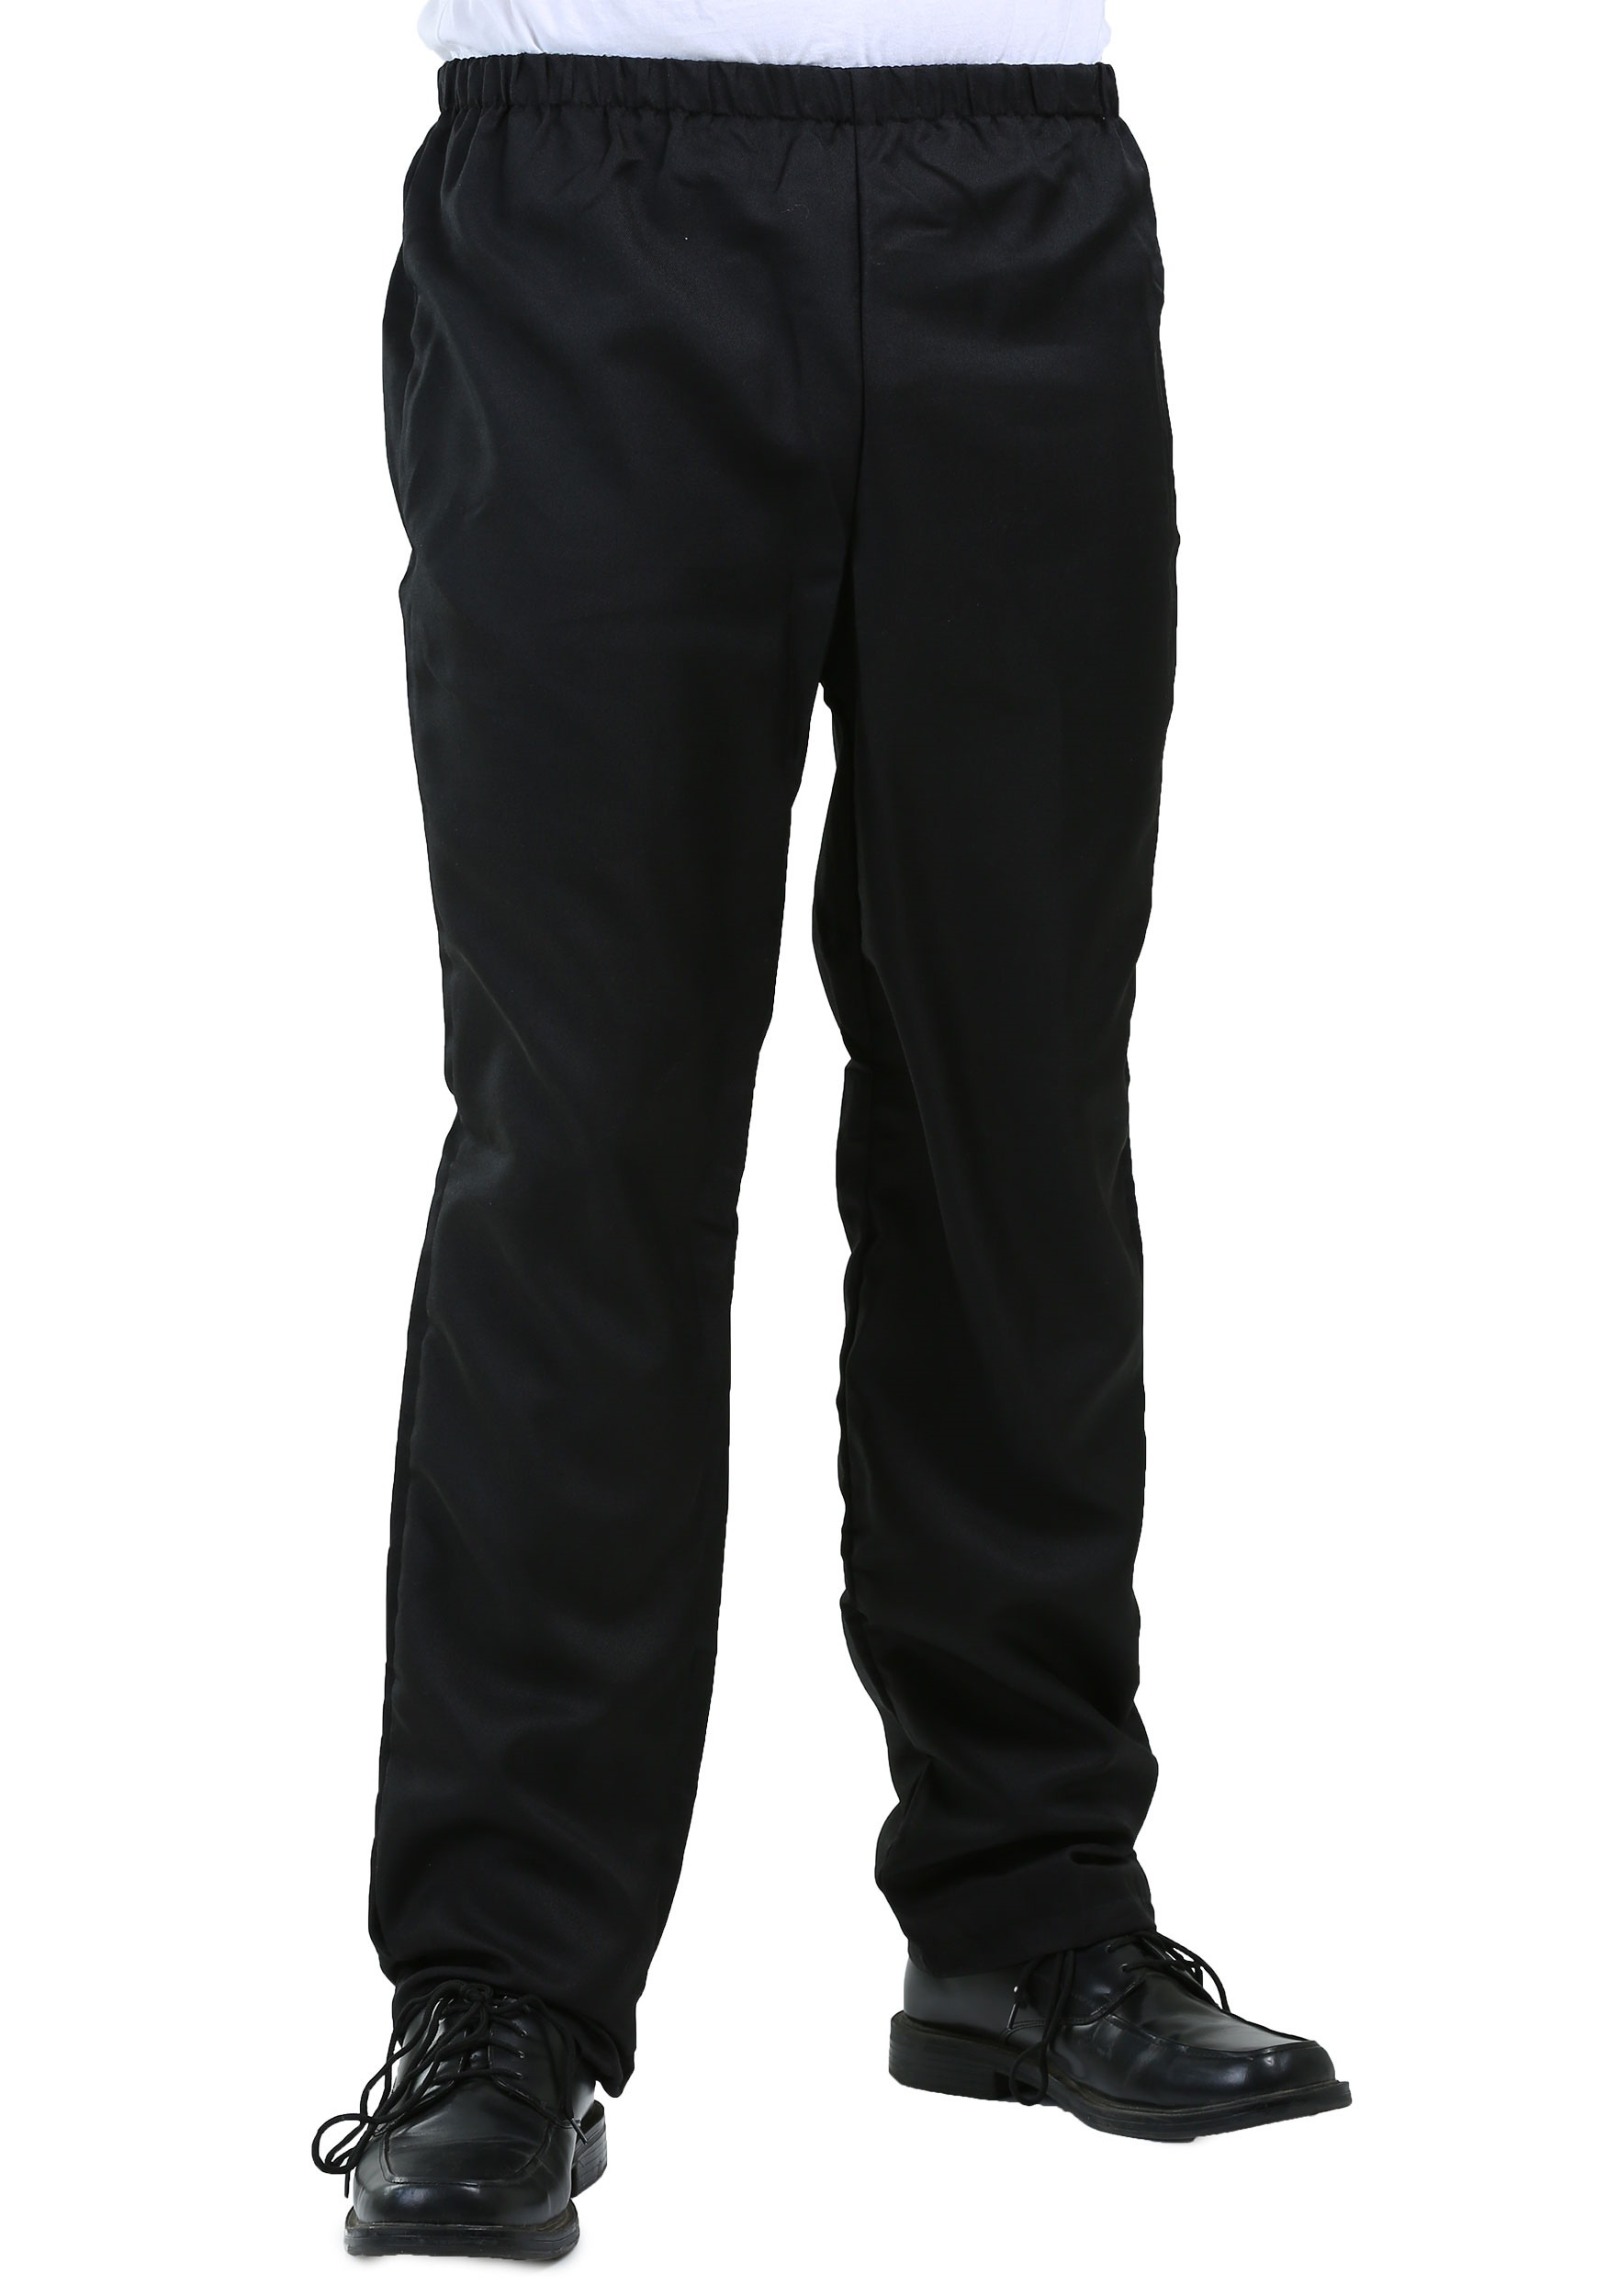 Male Costume Pants - Black Pants for Men